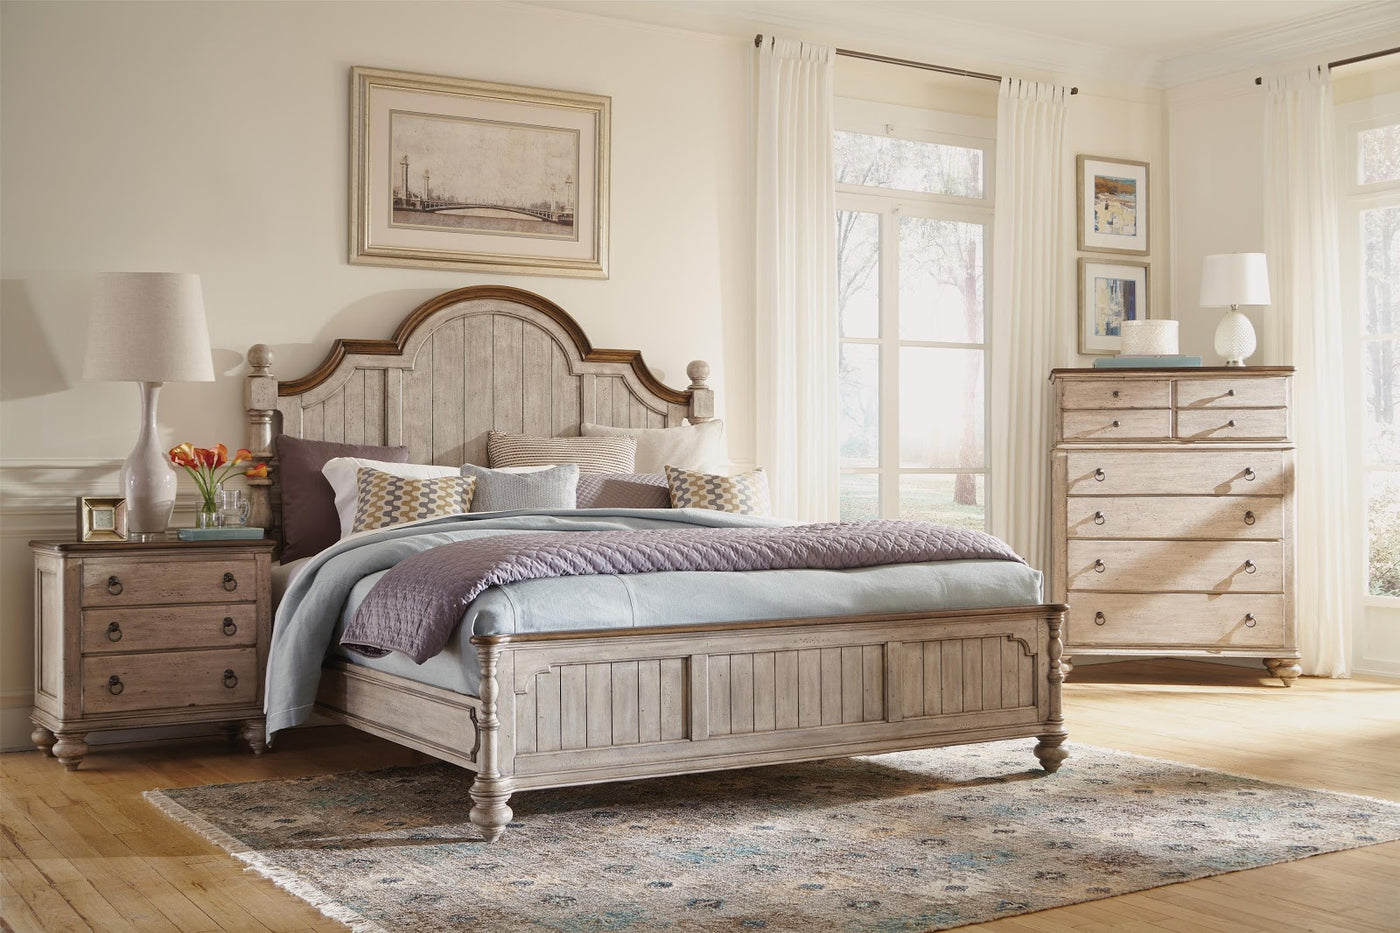 6 Steps to Transforming Your Master Bedroom